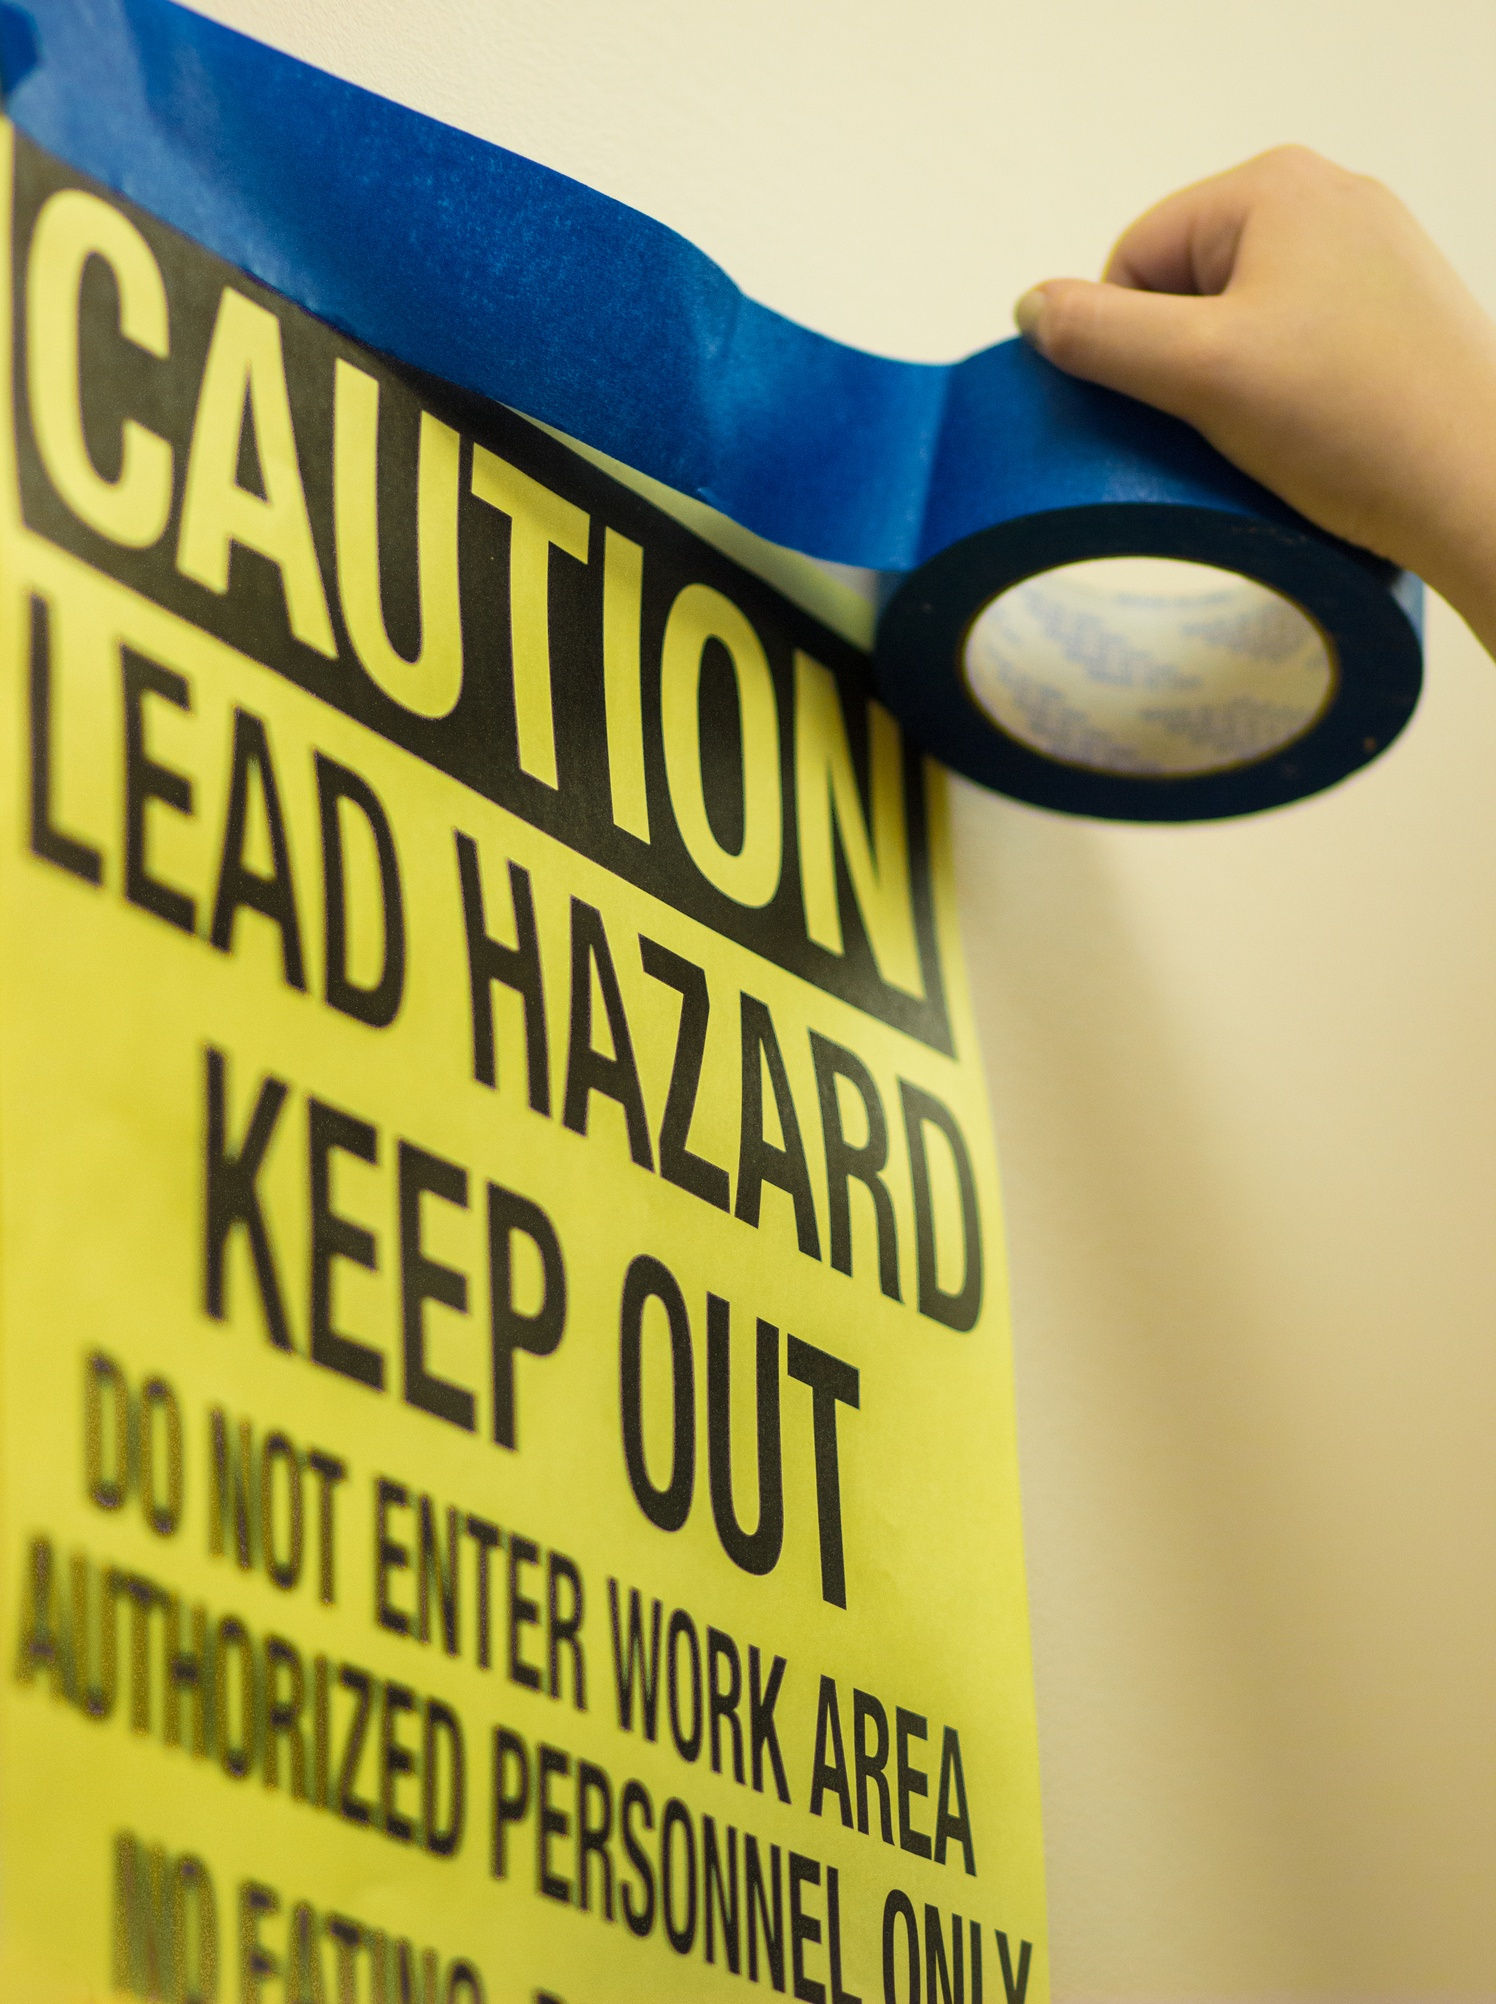 Lead Paint Hazard Warning